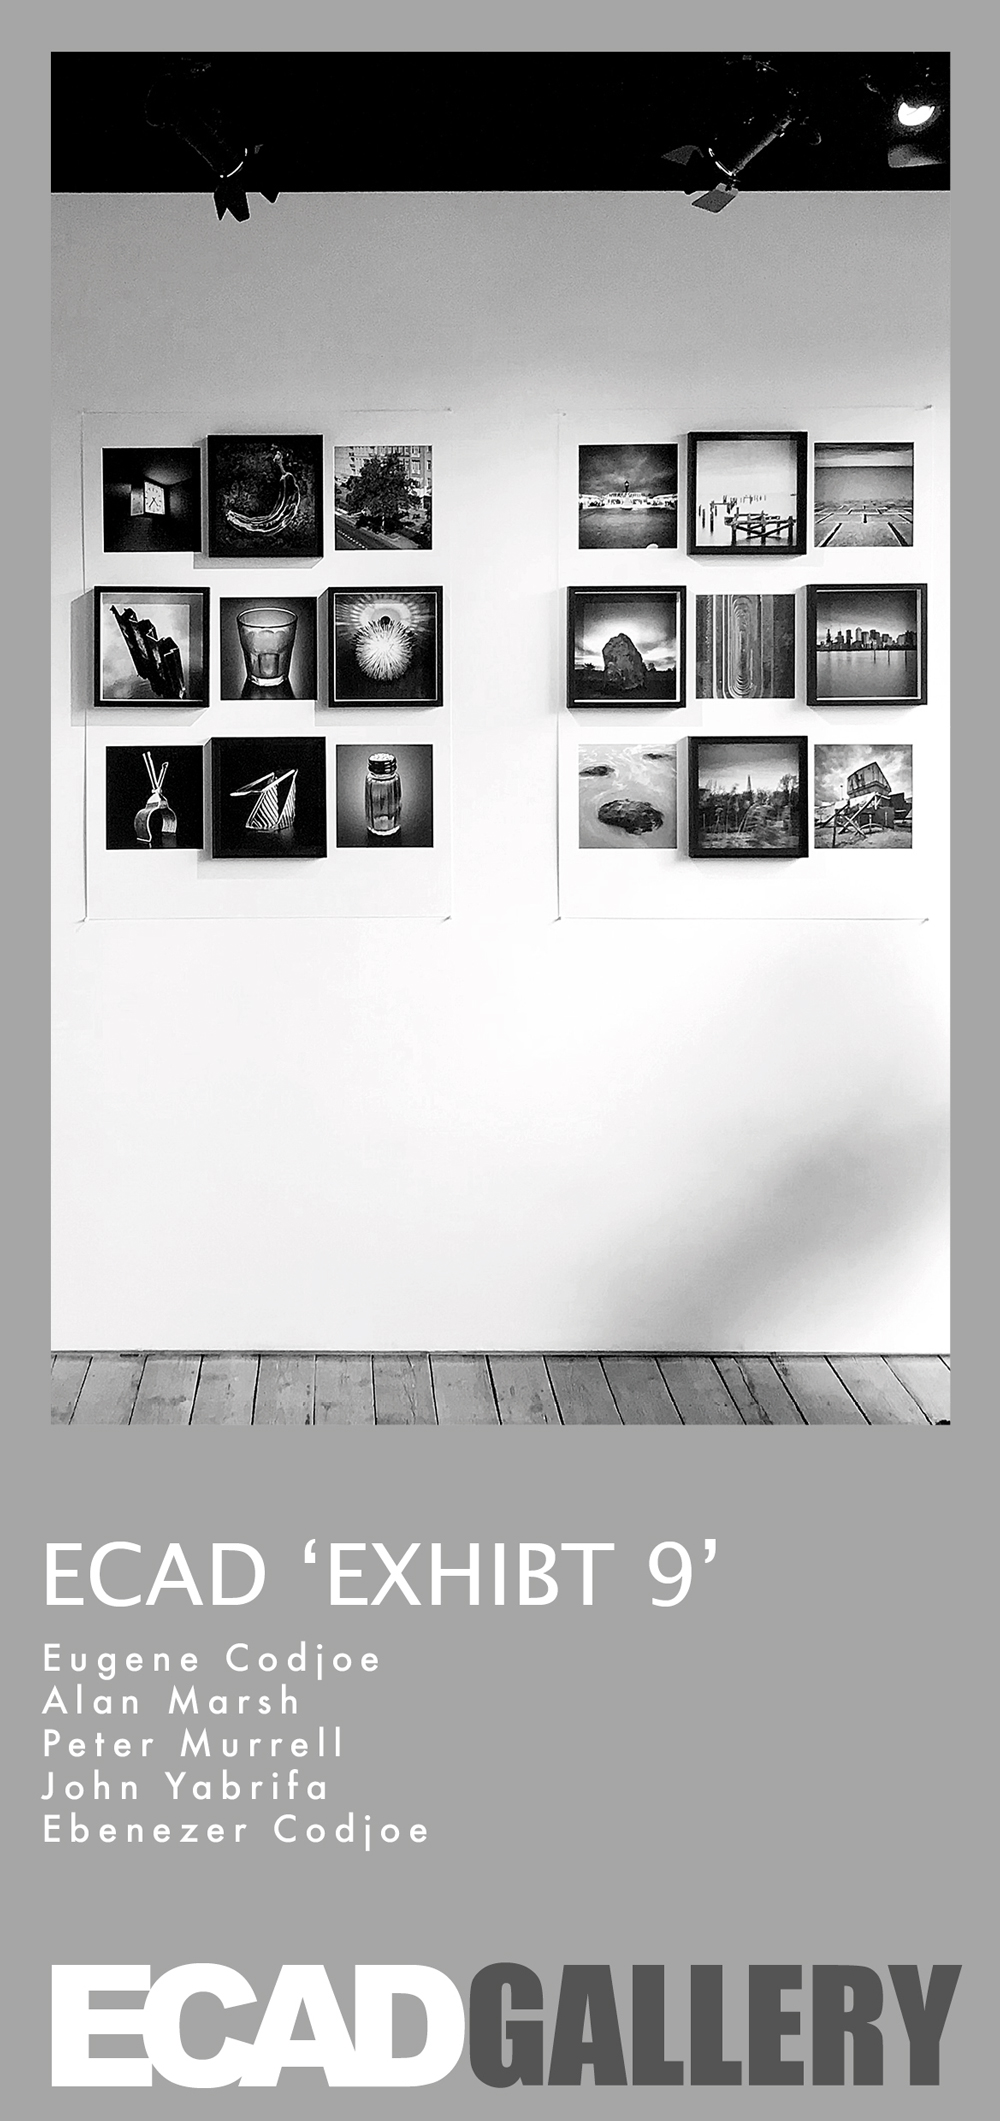 ECAD Exhibit 9 | Apr 25 - May 27 - An invitation & an opportunity to Exhibit & Sell your best 9 images in a photography gallery. Spotlight your impressive social media photography that you would consider are good enough to captivate, entertain & entice visitors to indulge with a purchase of your work.